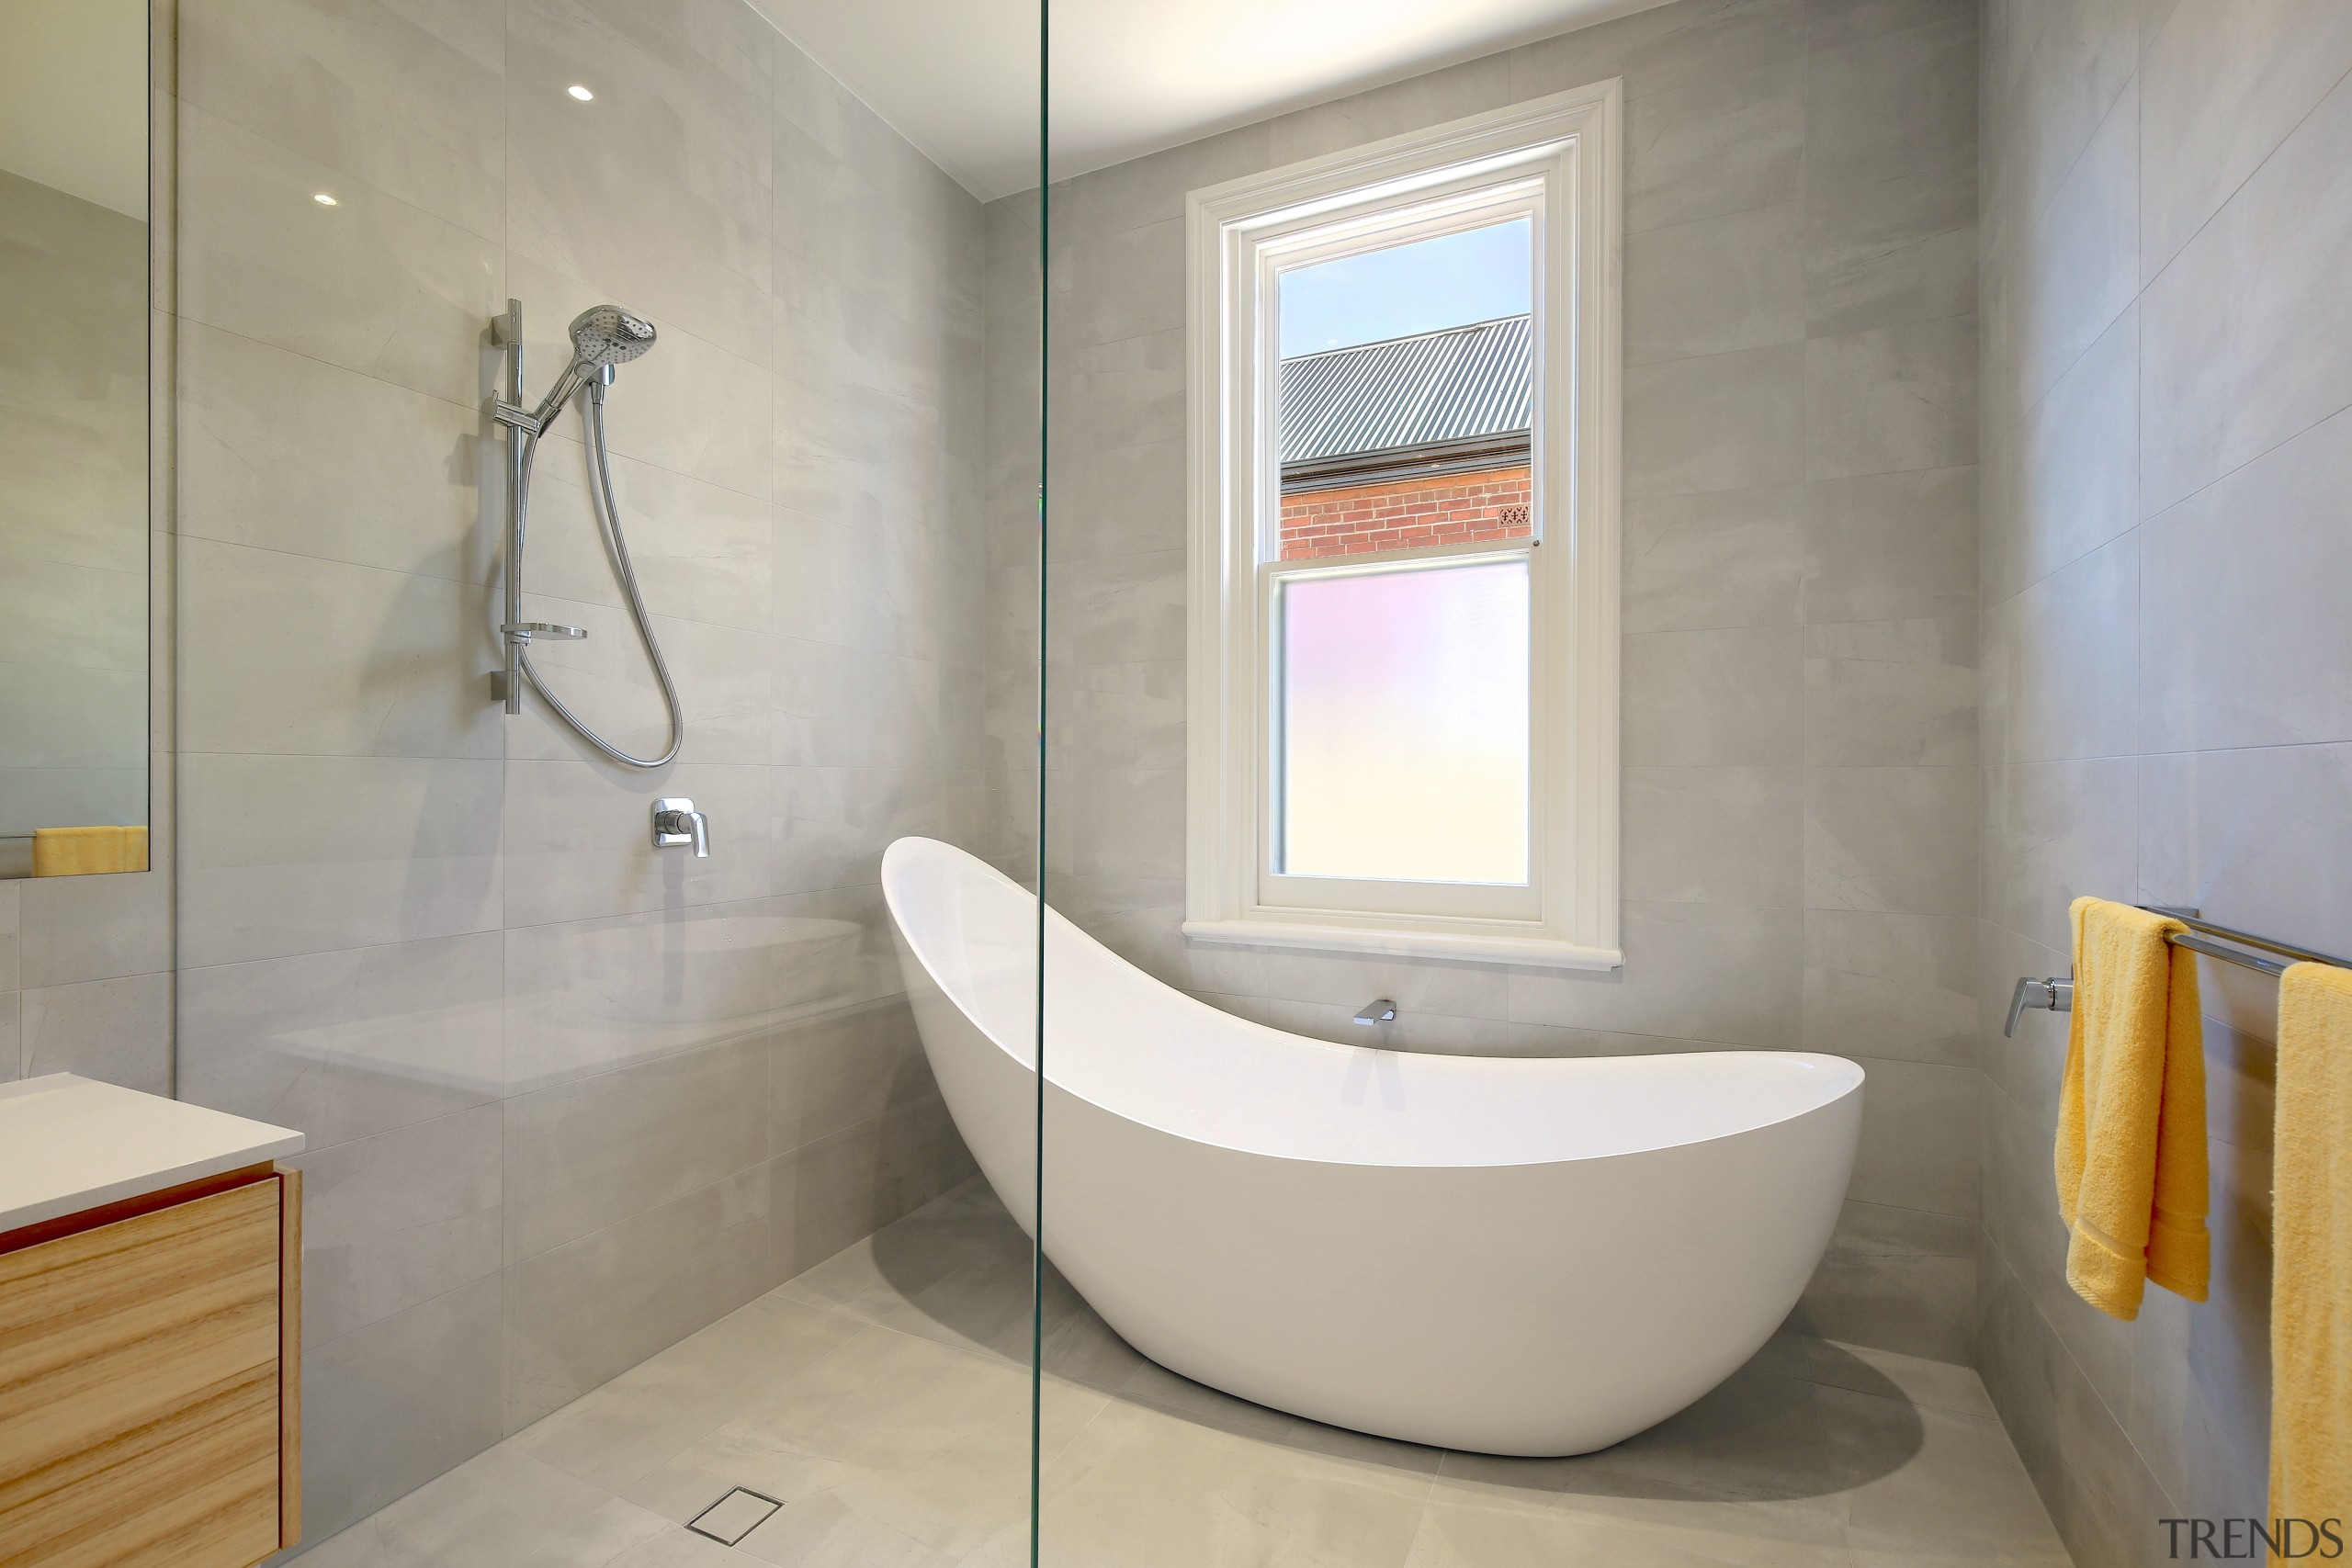 A wow factor bath was just one of architecture, bathroom, bathtub, building, ceiling, floor, flooring, house, interior design, material property, plumbing fixture, property, real estate, room, tap, tile, wall, gray